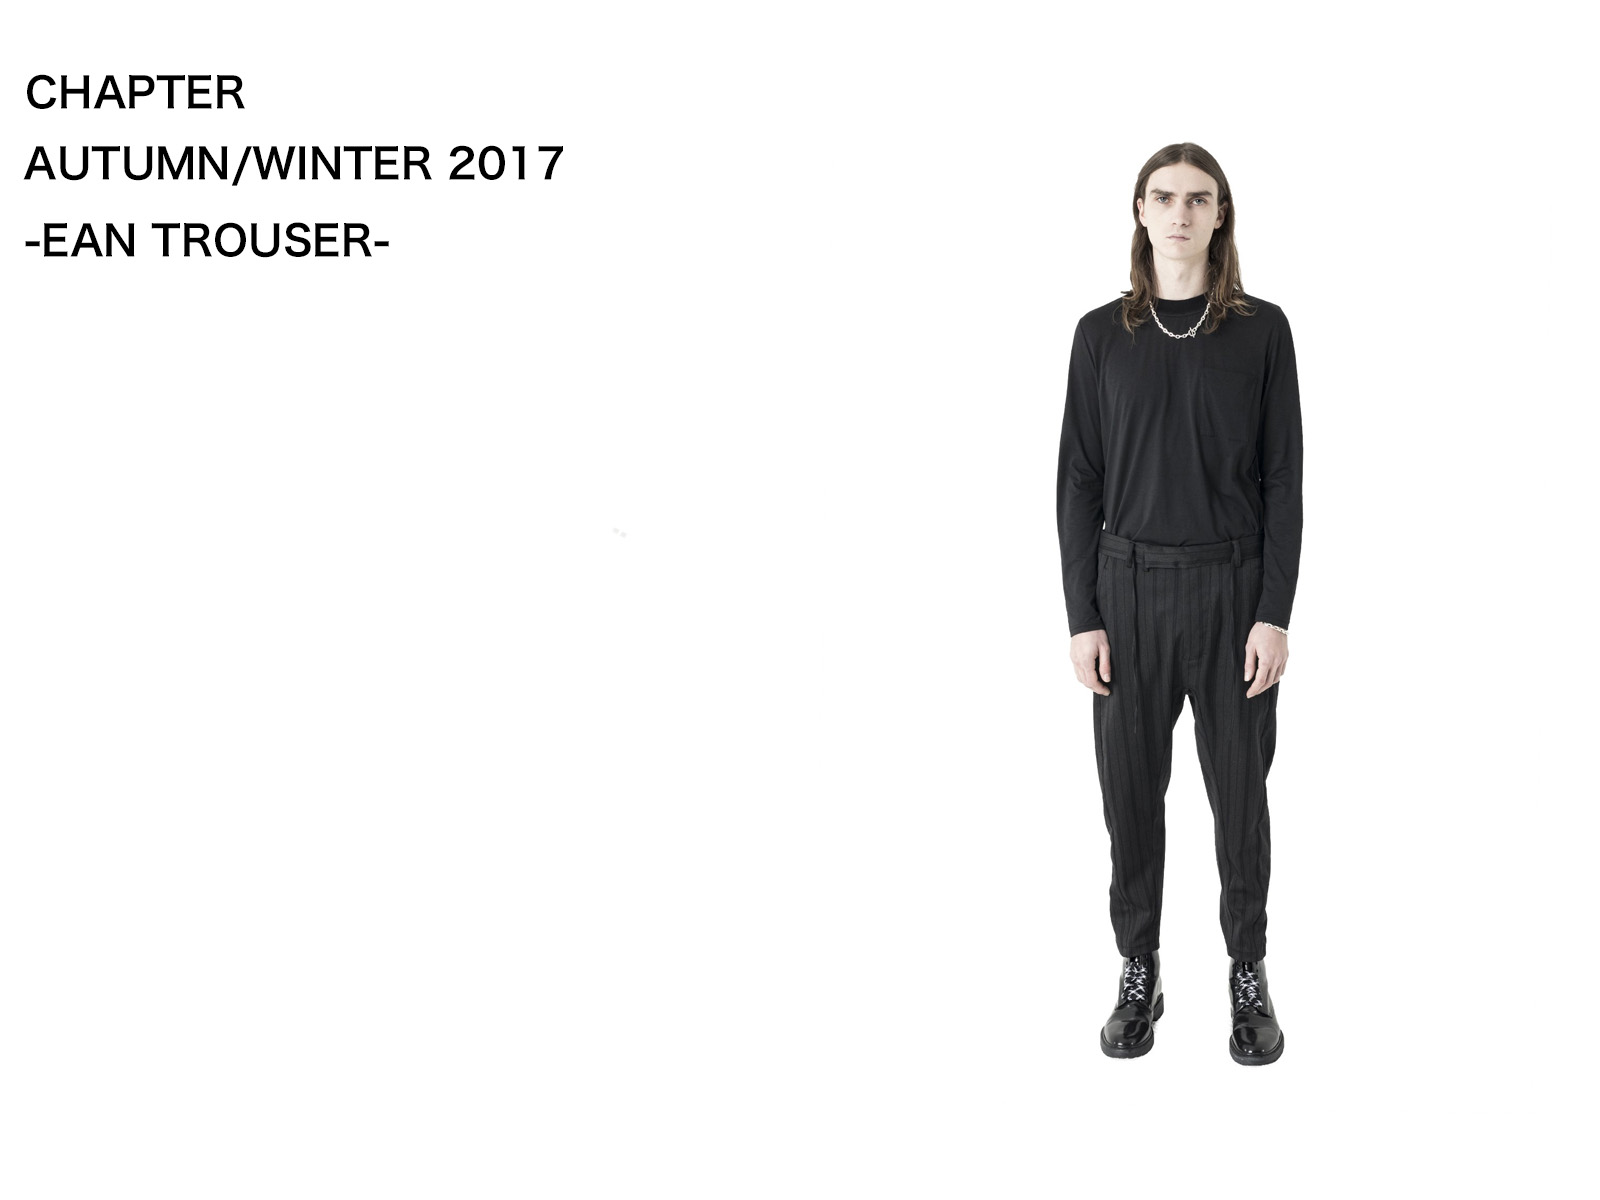 CHAPTER AUTUMN/WINTER 2017 – Ean Trouser